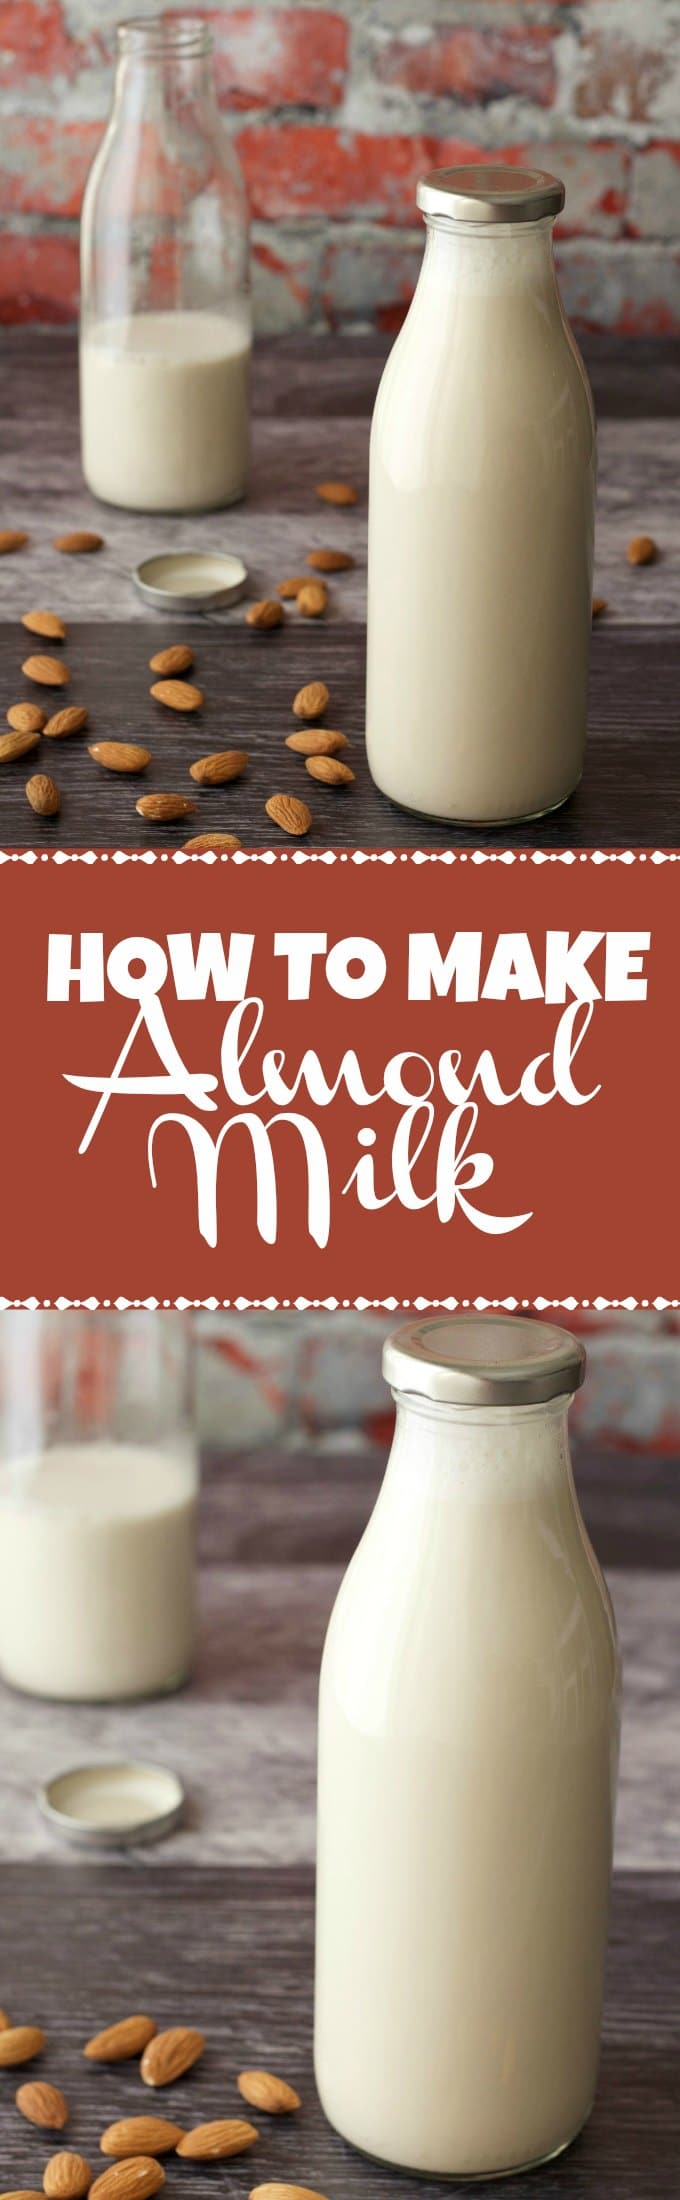 Learn how to make almond milk in this easy step by step tutorial. This ultra creamy and delicious homemade almond milk is vegan, nutritious and gluten-free. Vegan Recipes | Vegan Breakfast | Vegan Food | Gluten-Free Vegan | lovingitvegan.com